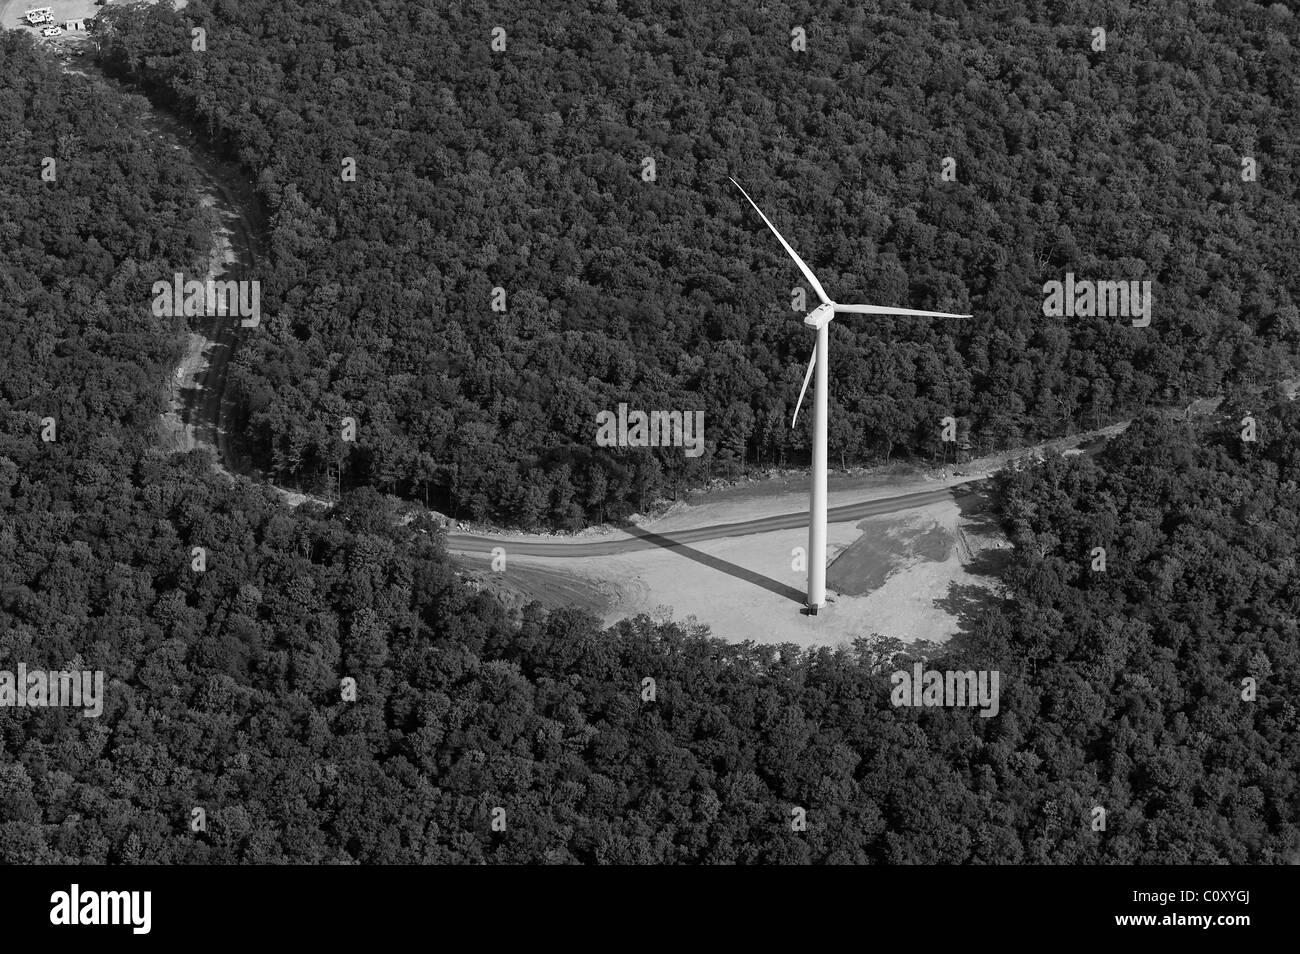 aerial view above wind turbine deciduous forest Appalachian mountains Pennsylvania - Stock Image